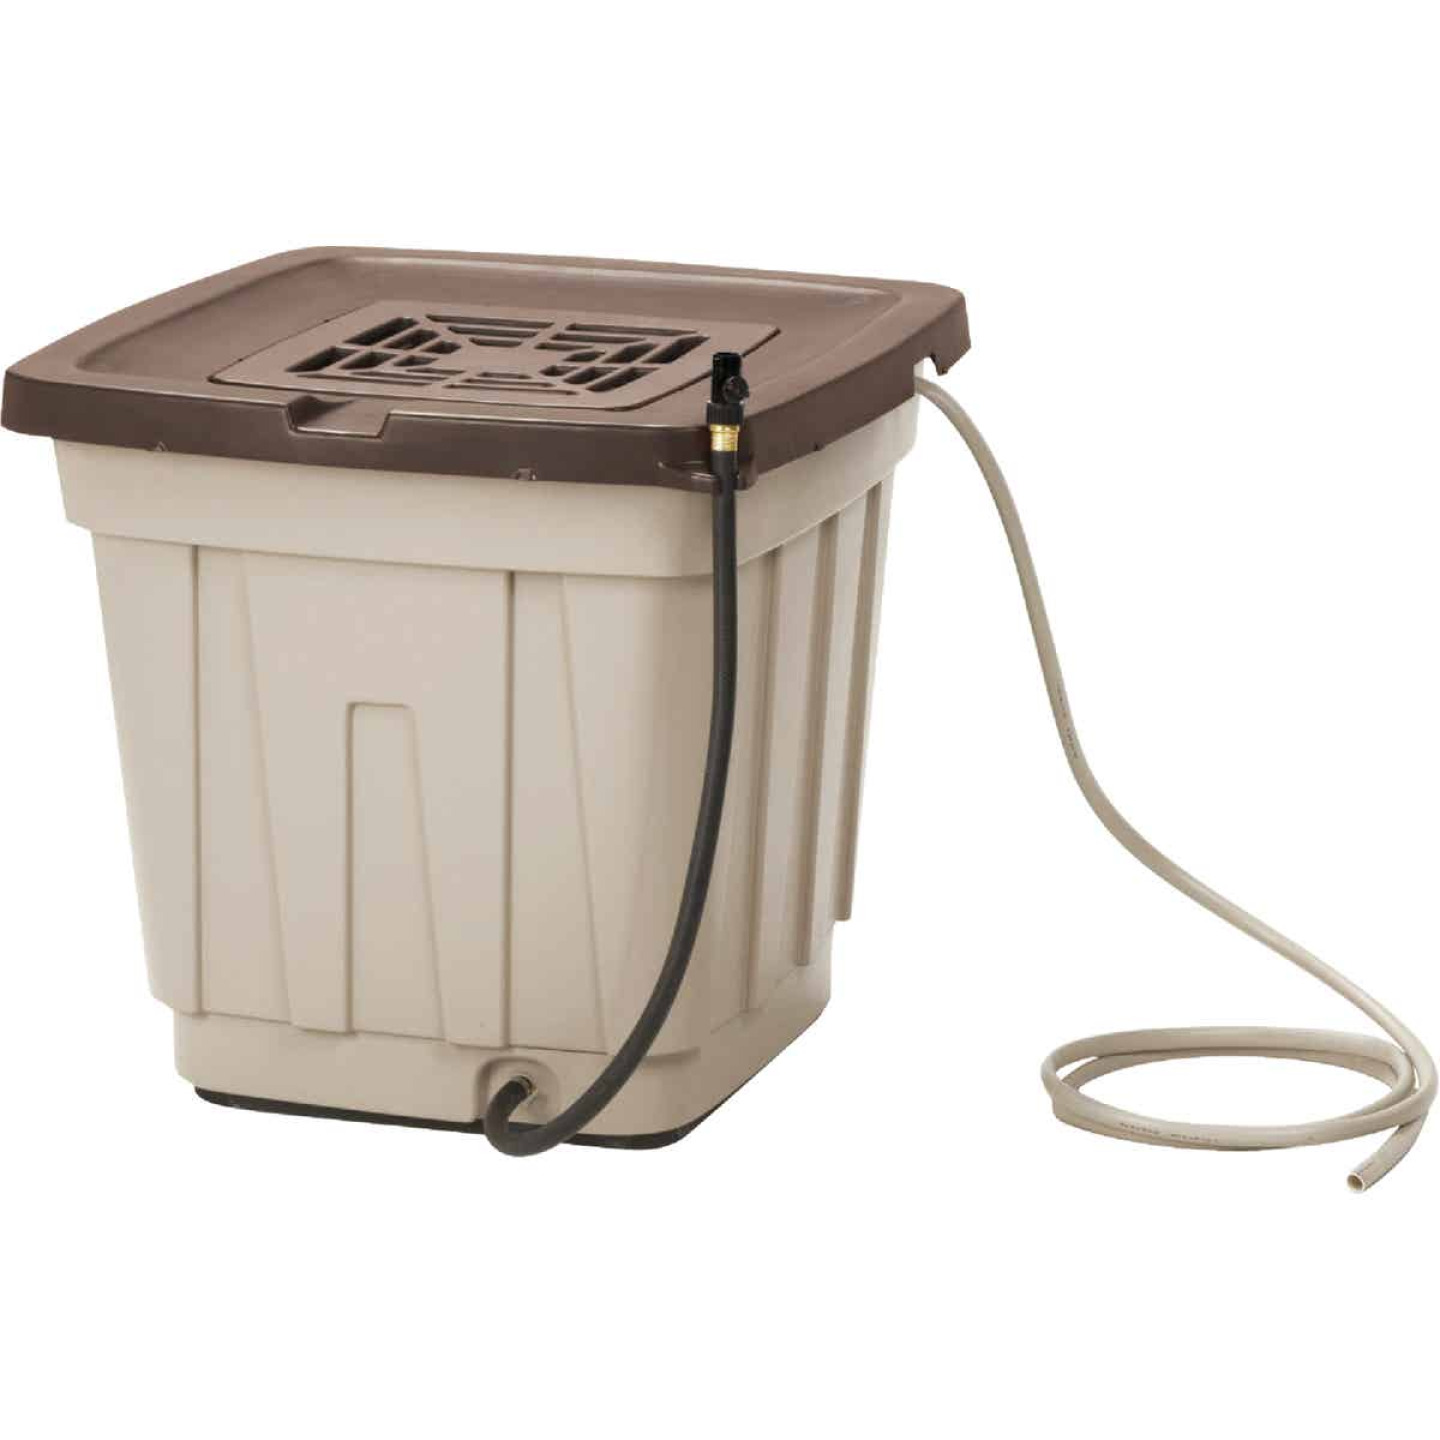 Suncast 50 Gal. Tan Durable Resin Rain Barrel Image 2